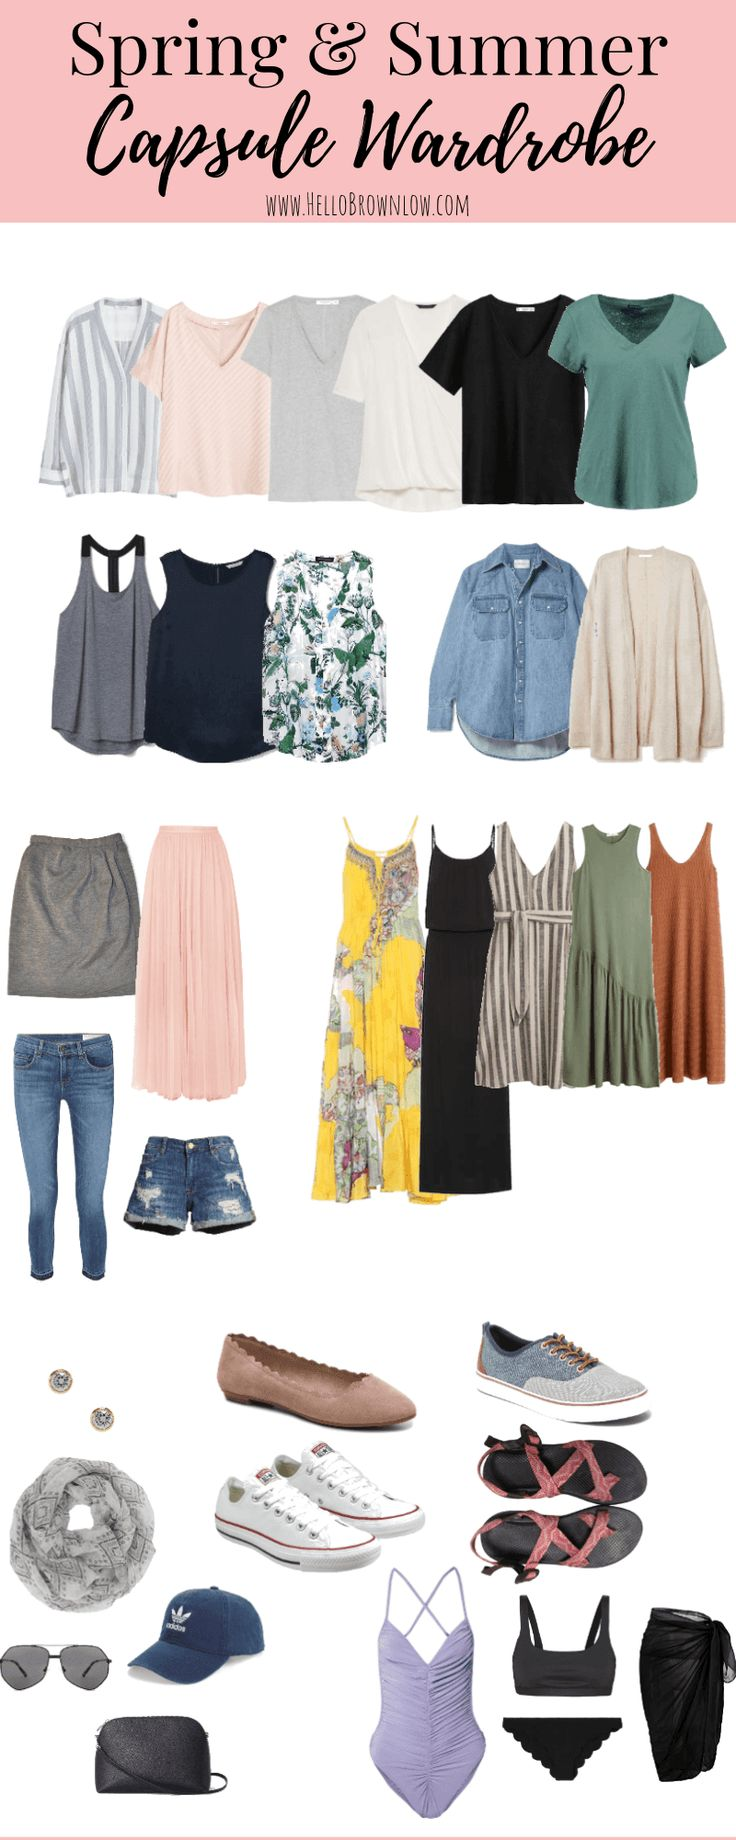 My Minimalist Spring & Summer Capsule Wardrobe | Hello Brownlow